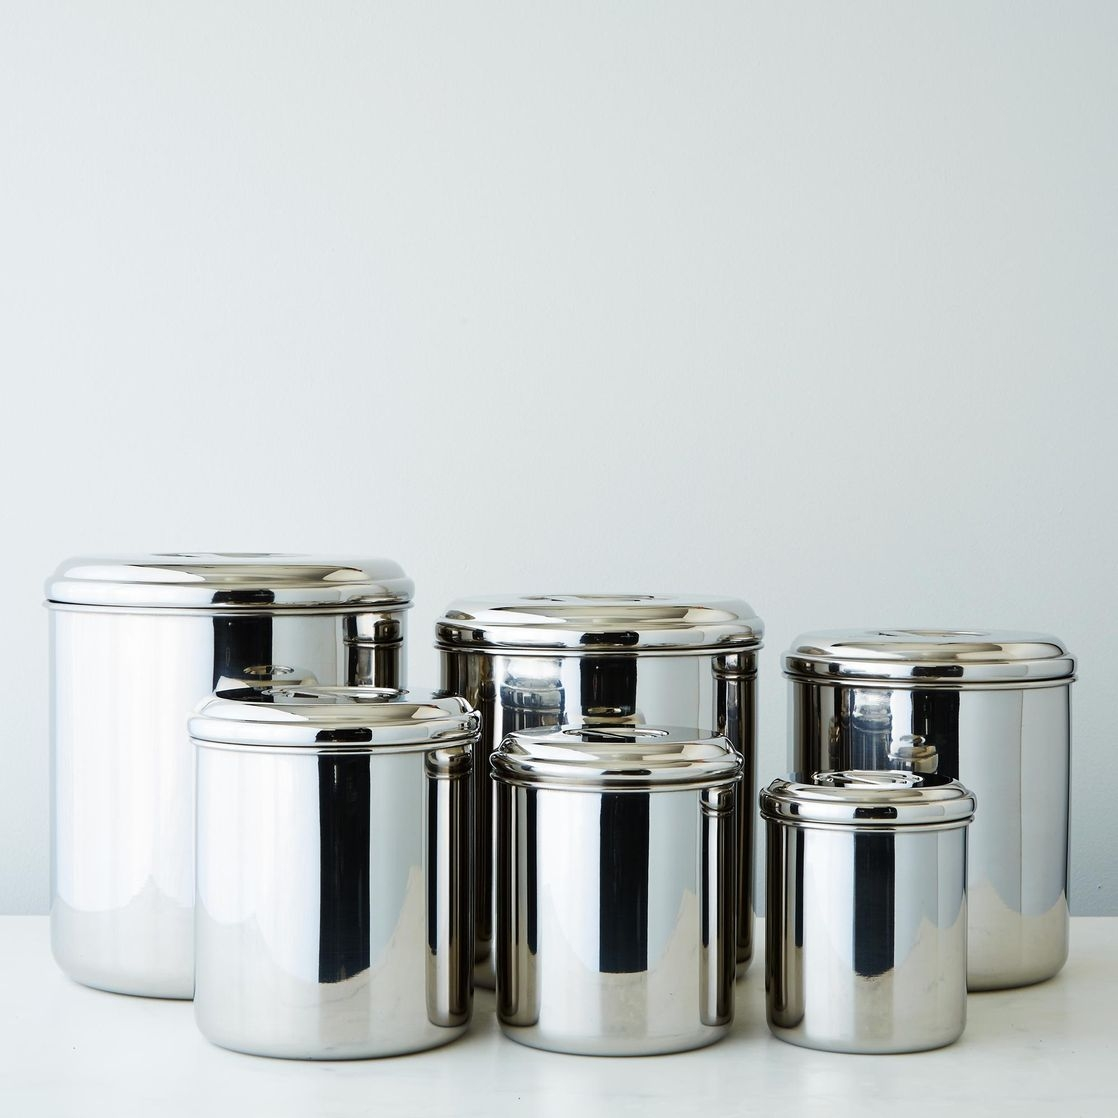 Permalink to Stainless Steel Kitchen Canisters Sets